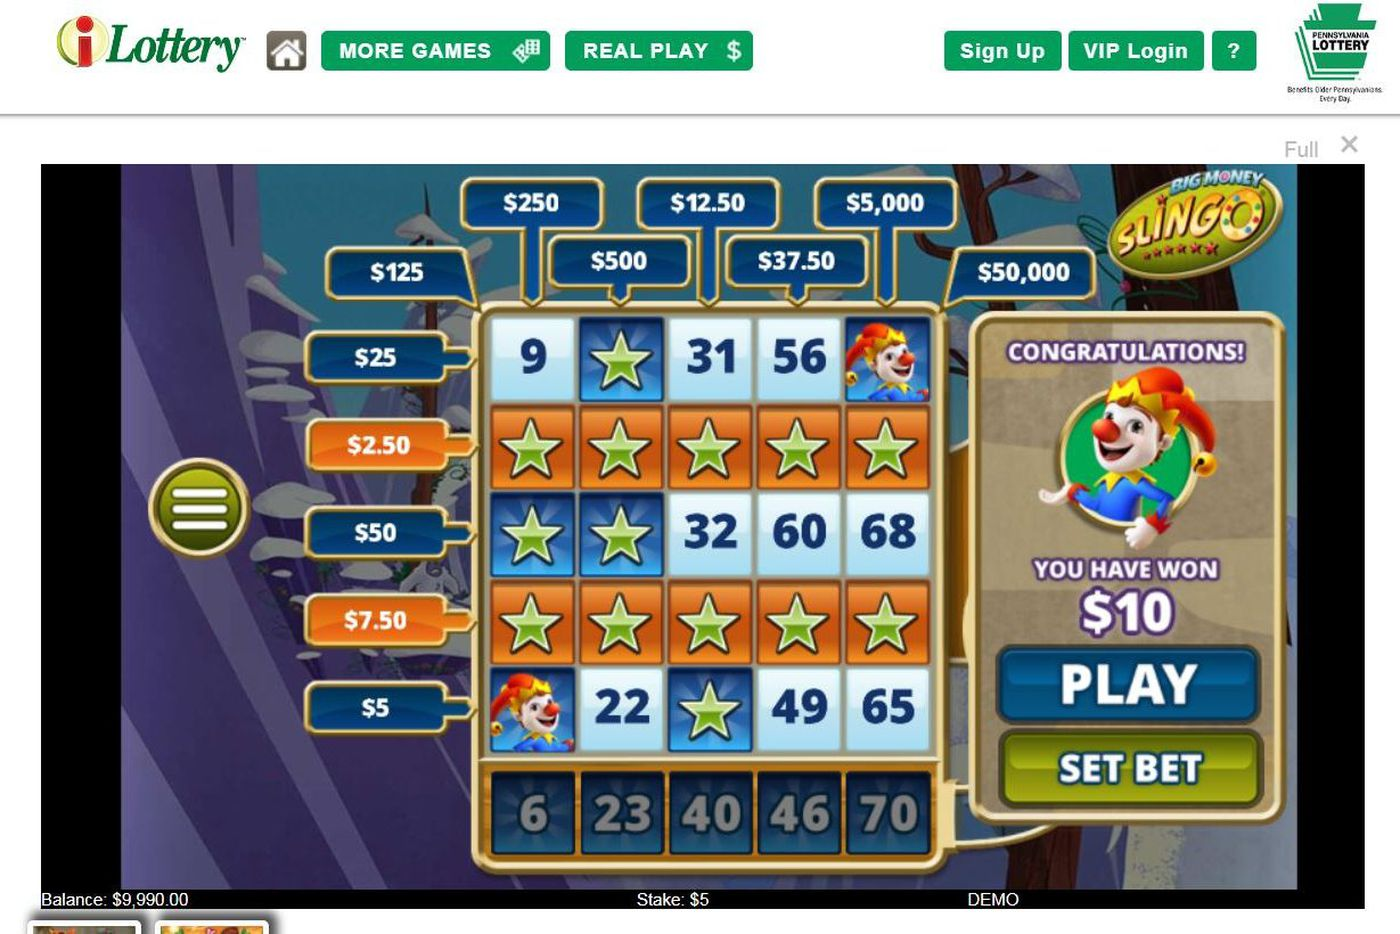 Casinos sue Pa. Lottery to stop online games, claiming unfair competition